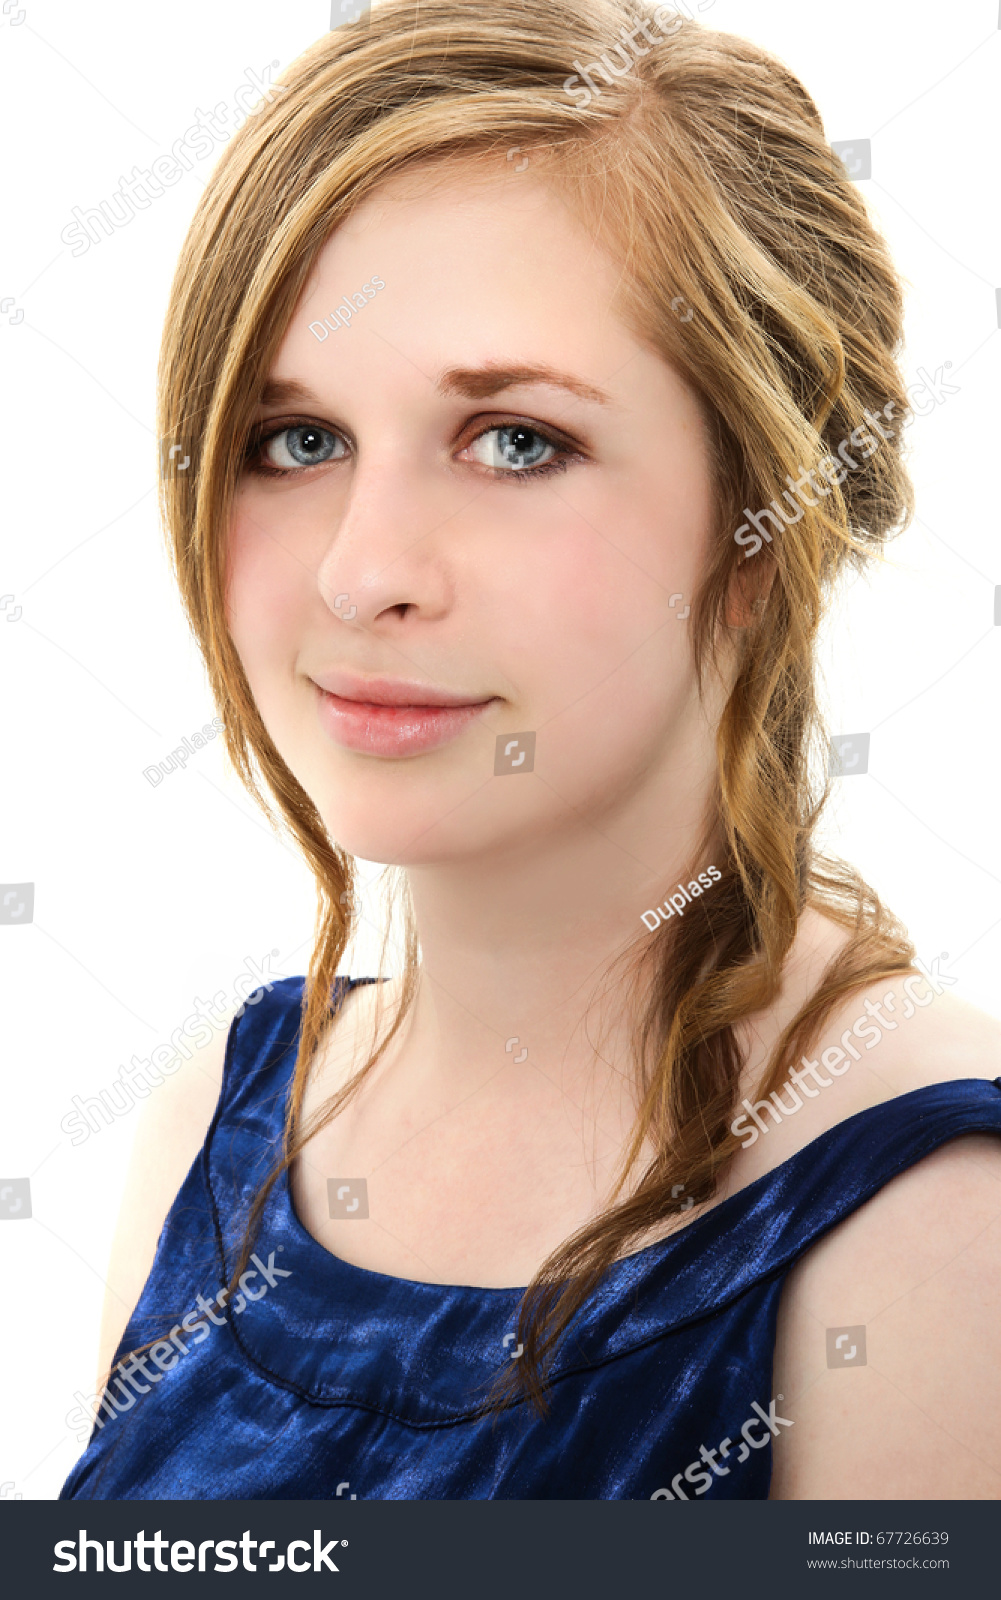 Beautiful 18 Year Old Girl Prom Stock Photo 67726639 - Shutterstock-4523